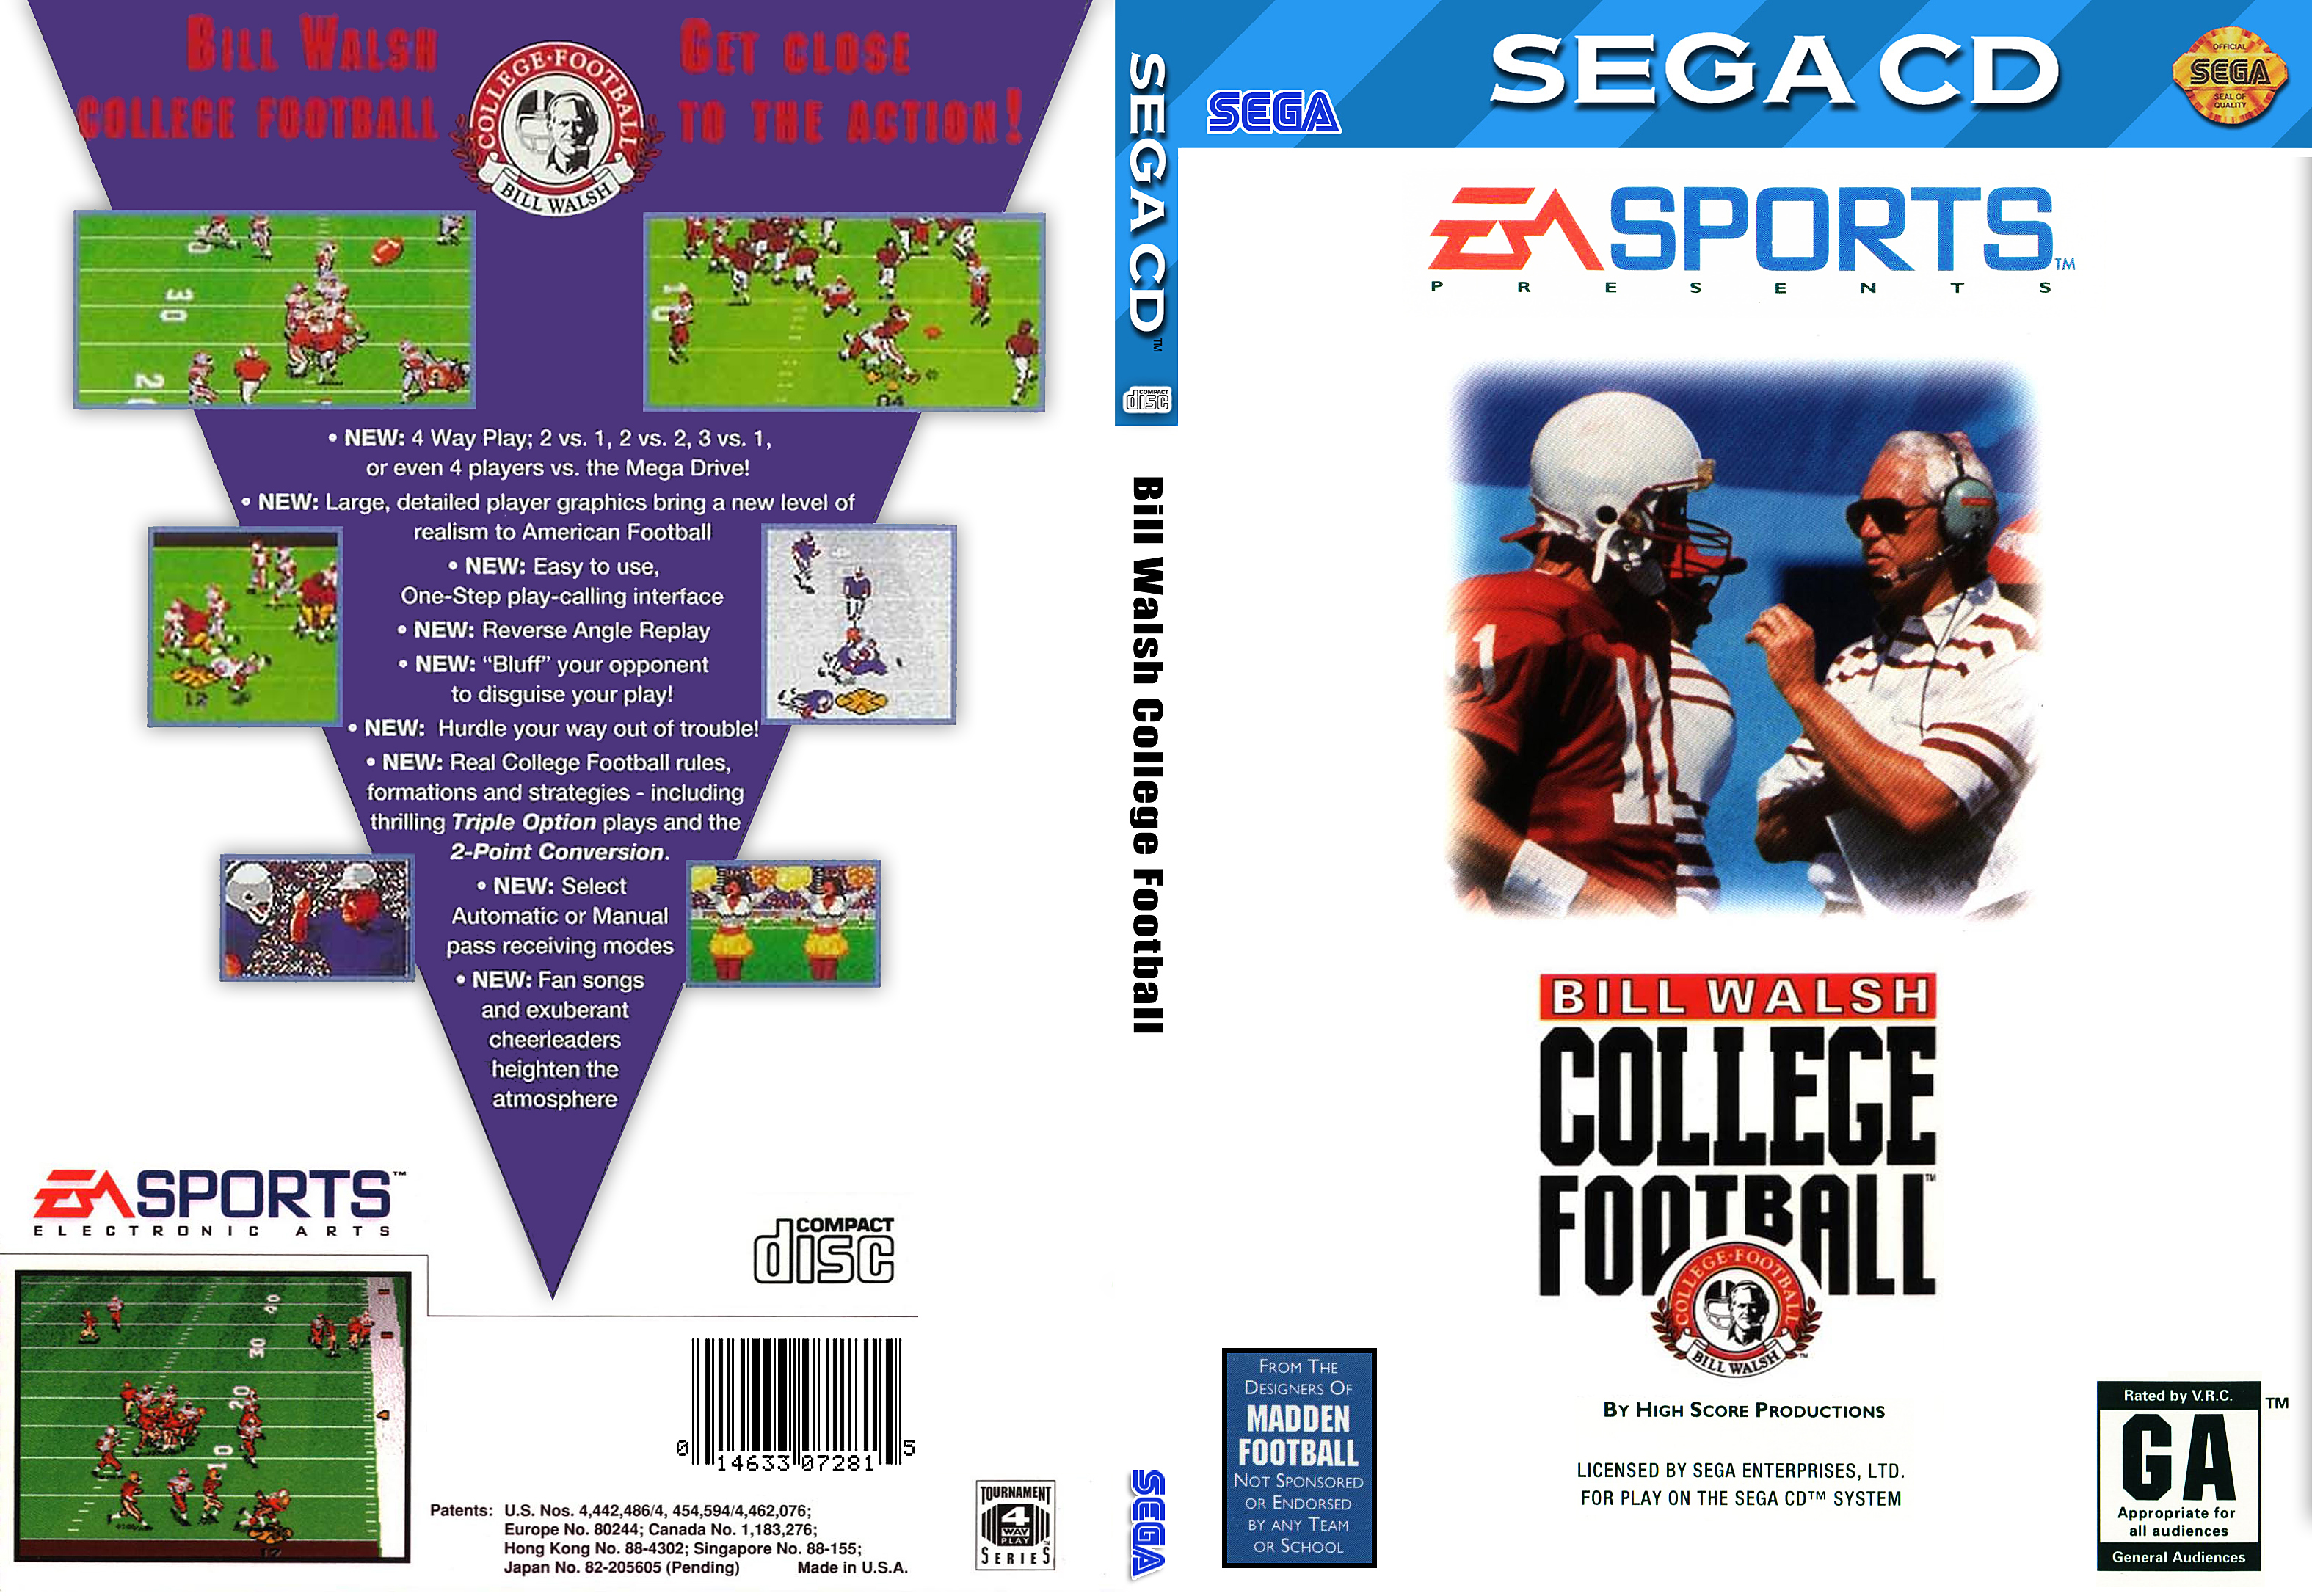 Bill Walsh College Football Sega Cd Covers Cover Century Over